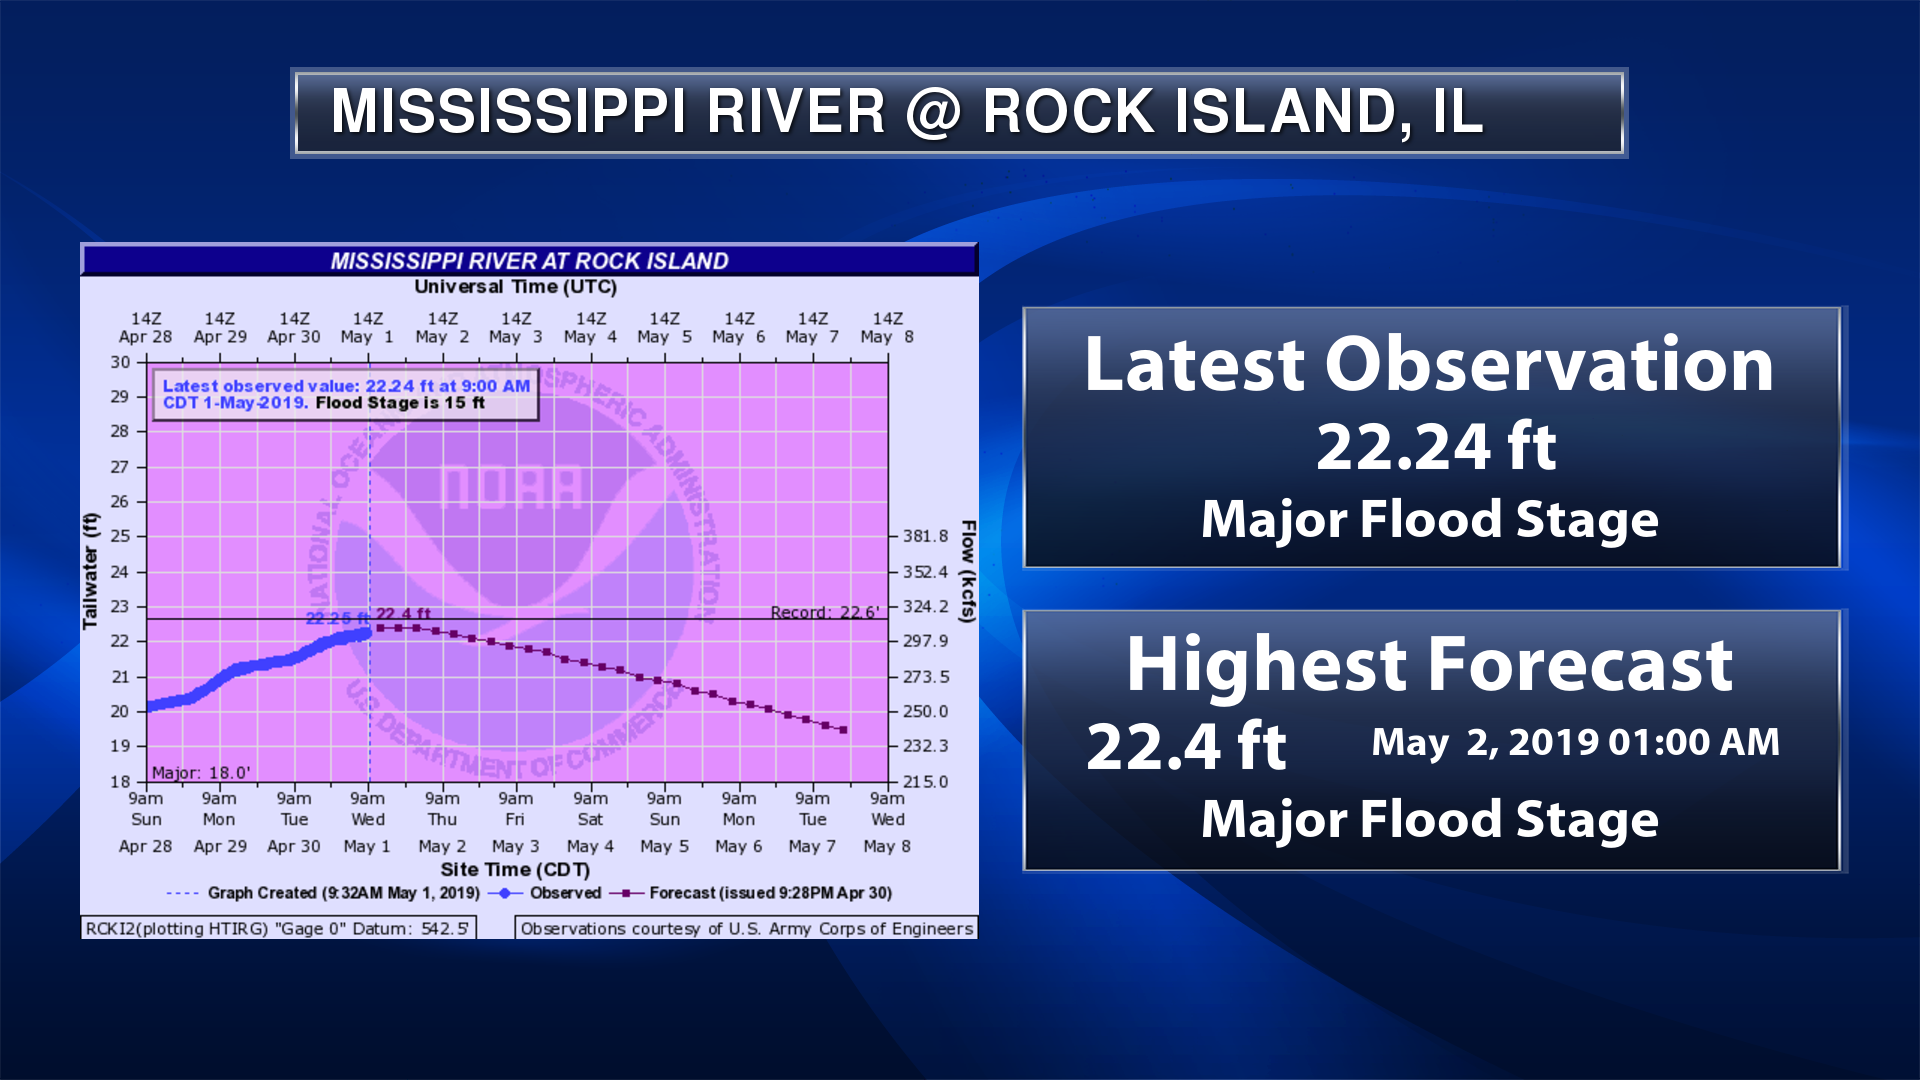 Flood weather graphic of AHPS hydrograph of Mississippi River at Rock Island, Illinois in the Quad cities showing near-record flood stage.